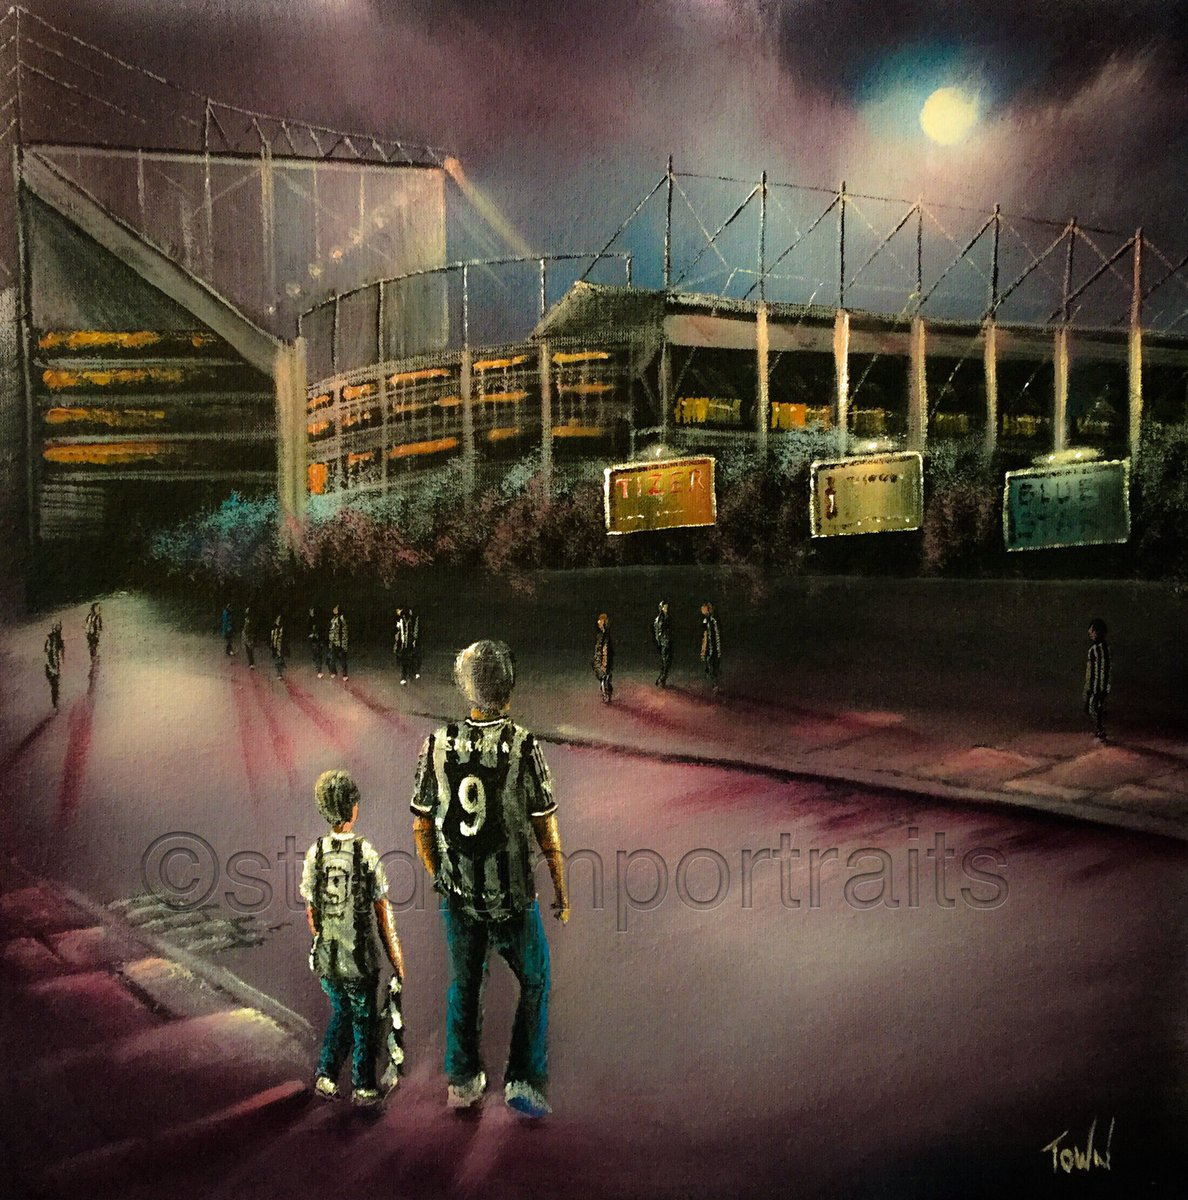 Christmas is getting nearer 🎄 😊for all your sporting gift ideas - box canvas, prints, jigsaws or contact me to discuss your own commission - follow the link and find your club at https://t.co/5ZJ2VCSObd Pls RT #NewcastleUnited #NEWCASTLE @ChronicleNUFC @NUFC #nufc https://t.co/EwakHqgfiZ